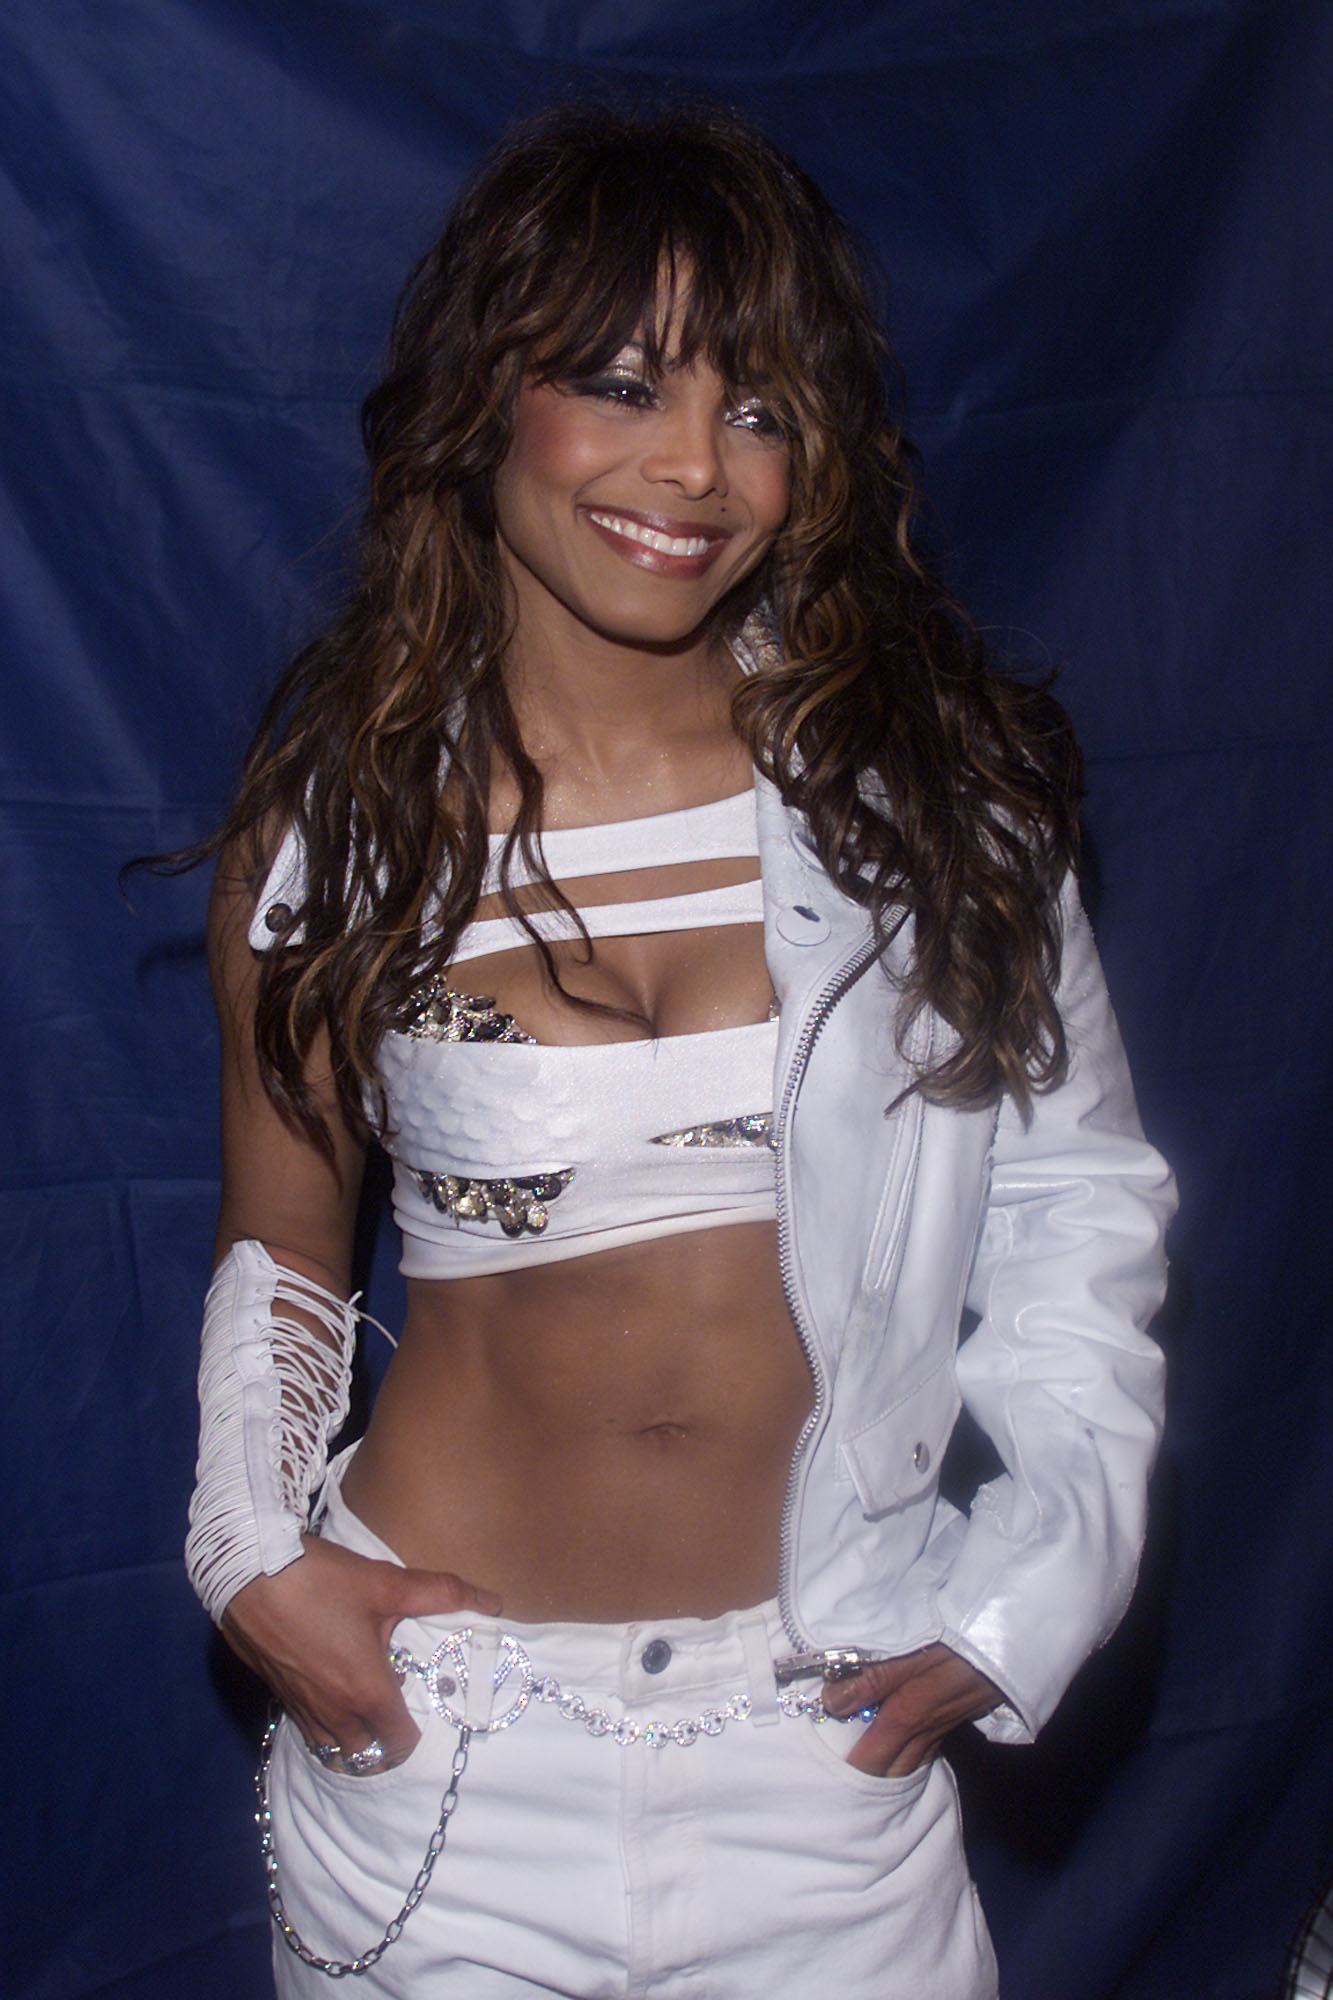 janet jackson standing with her hands in her pockets wearing a slashed crop top